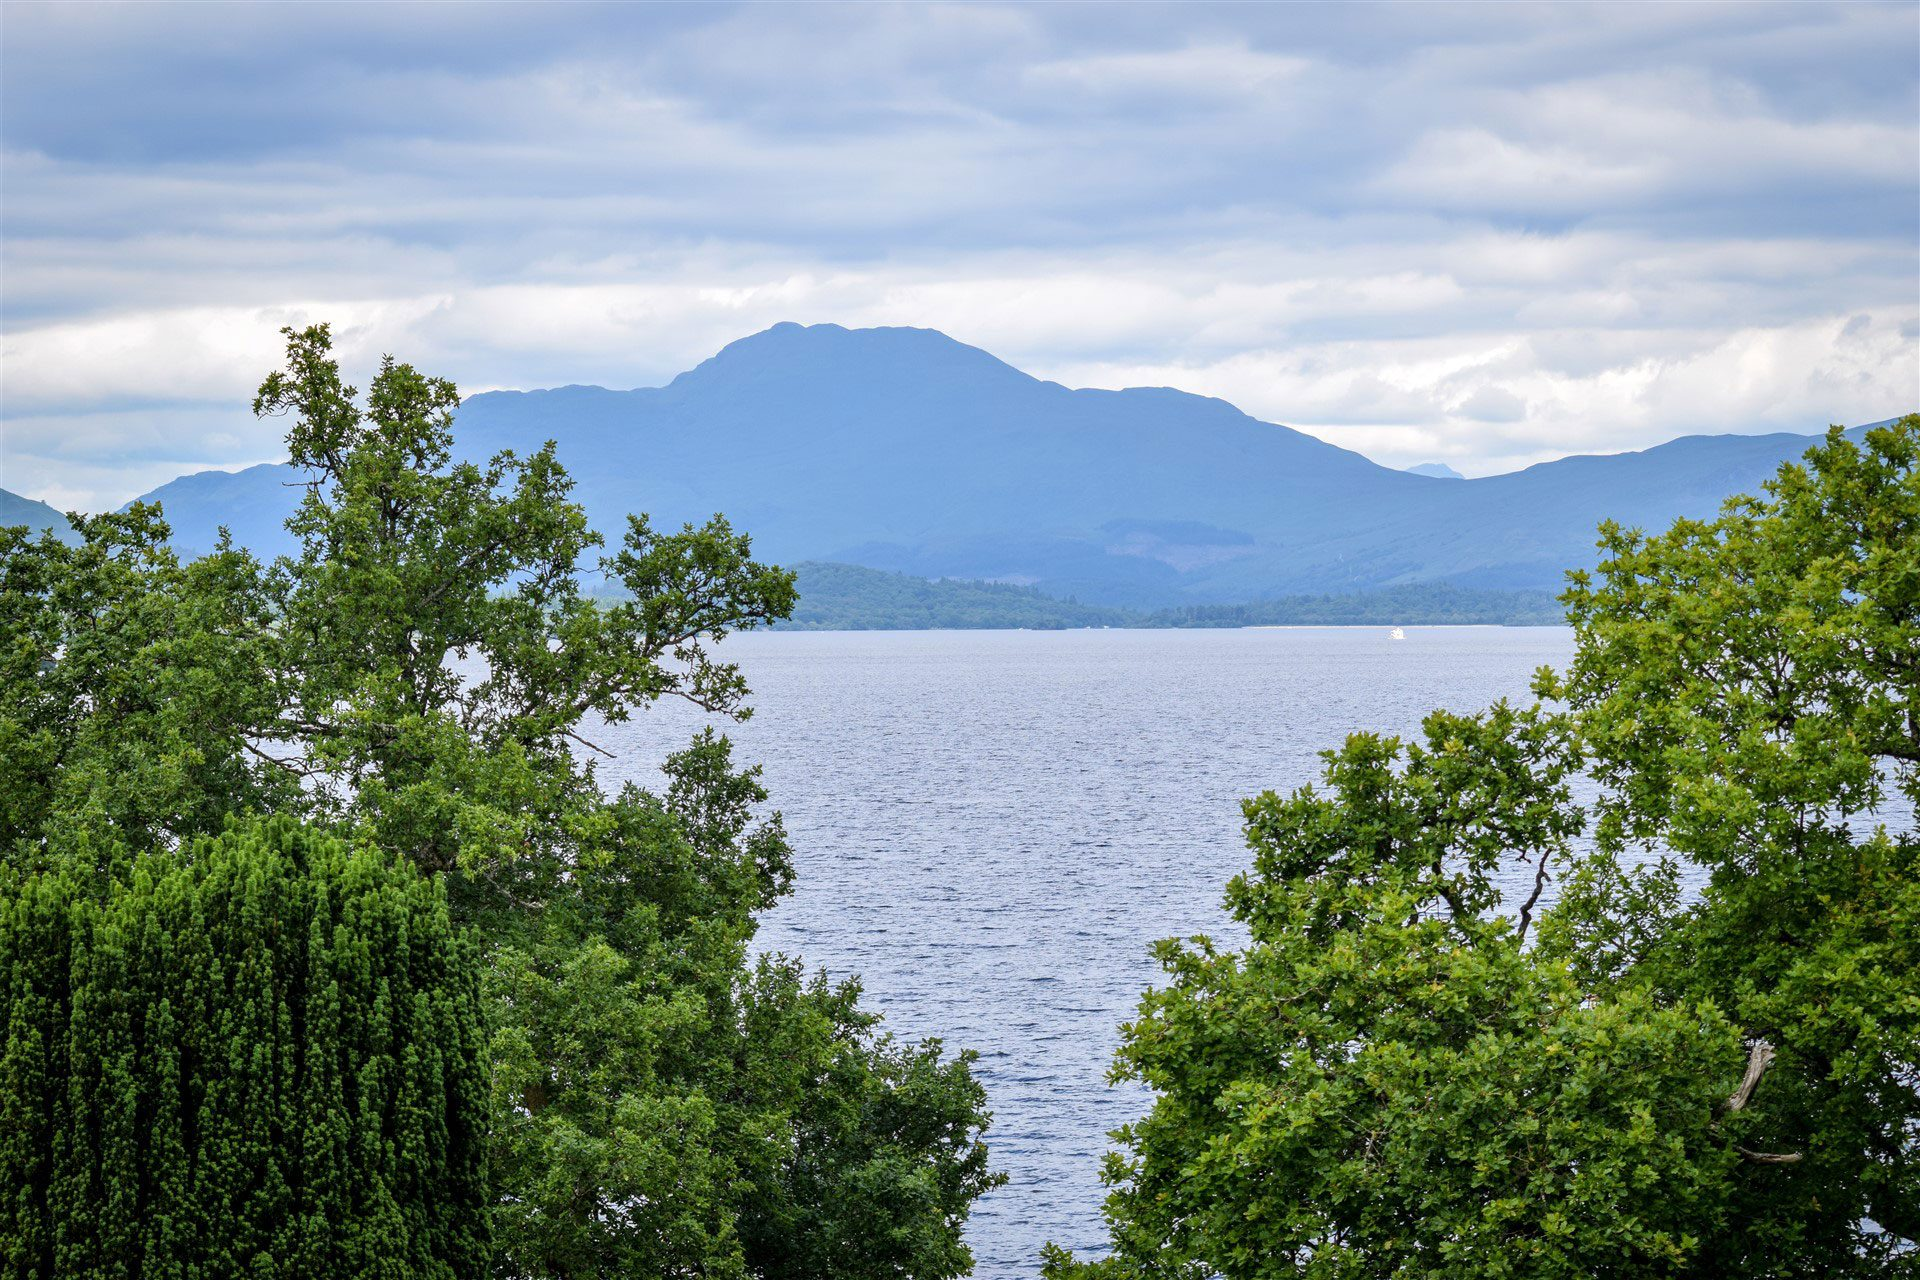 A walk in the grounds of Benoch Castle unveils delightful views of Loch Lomond